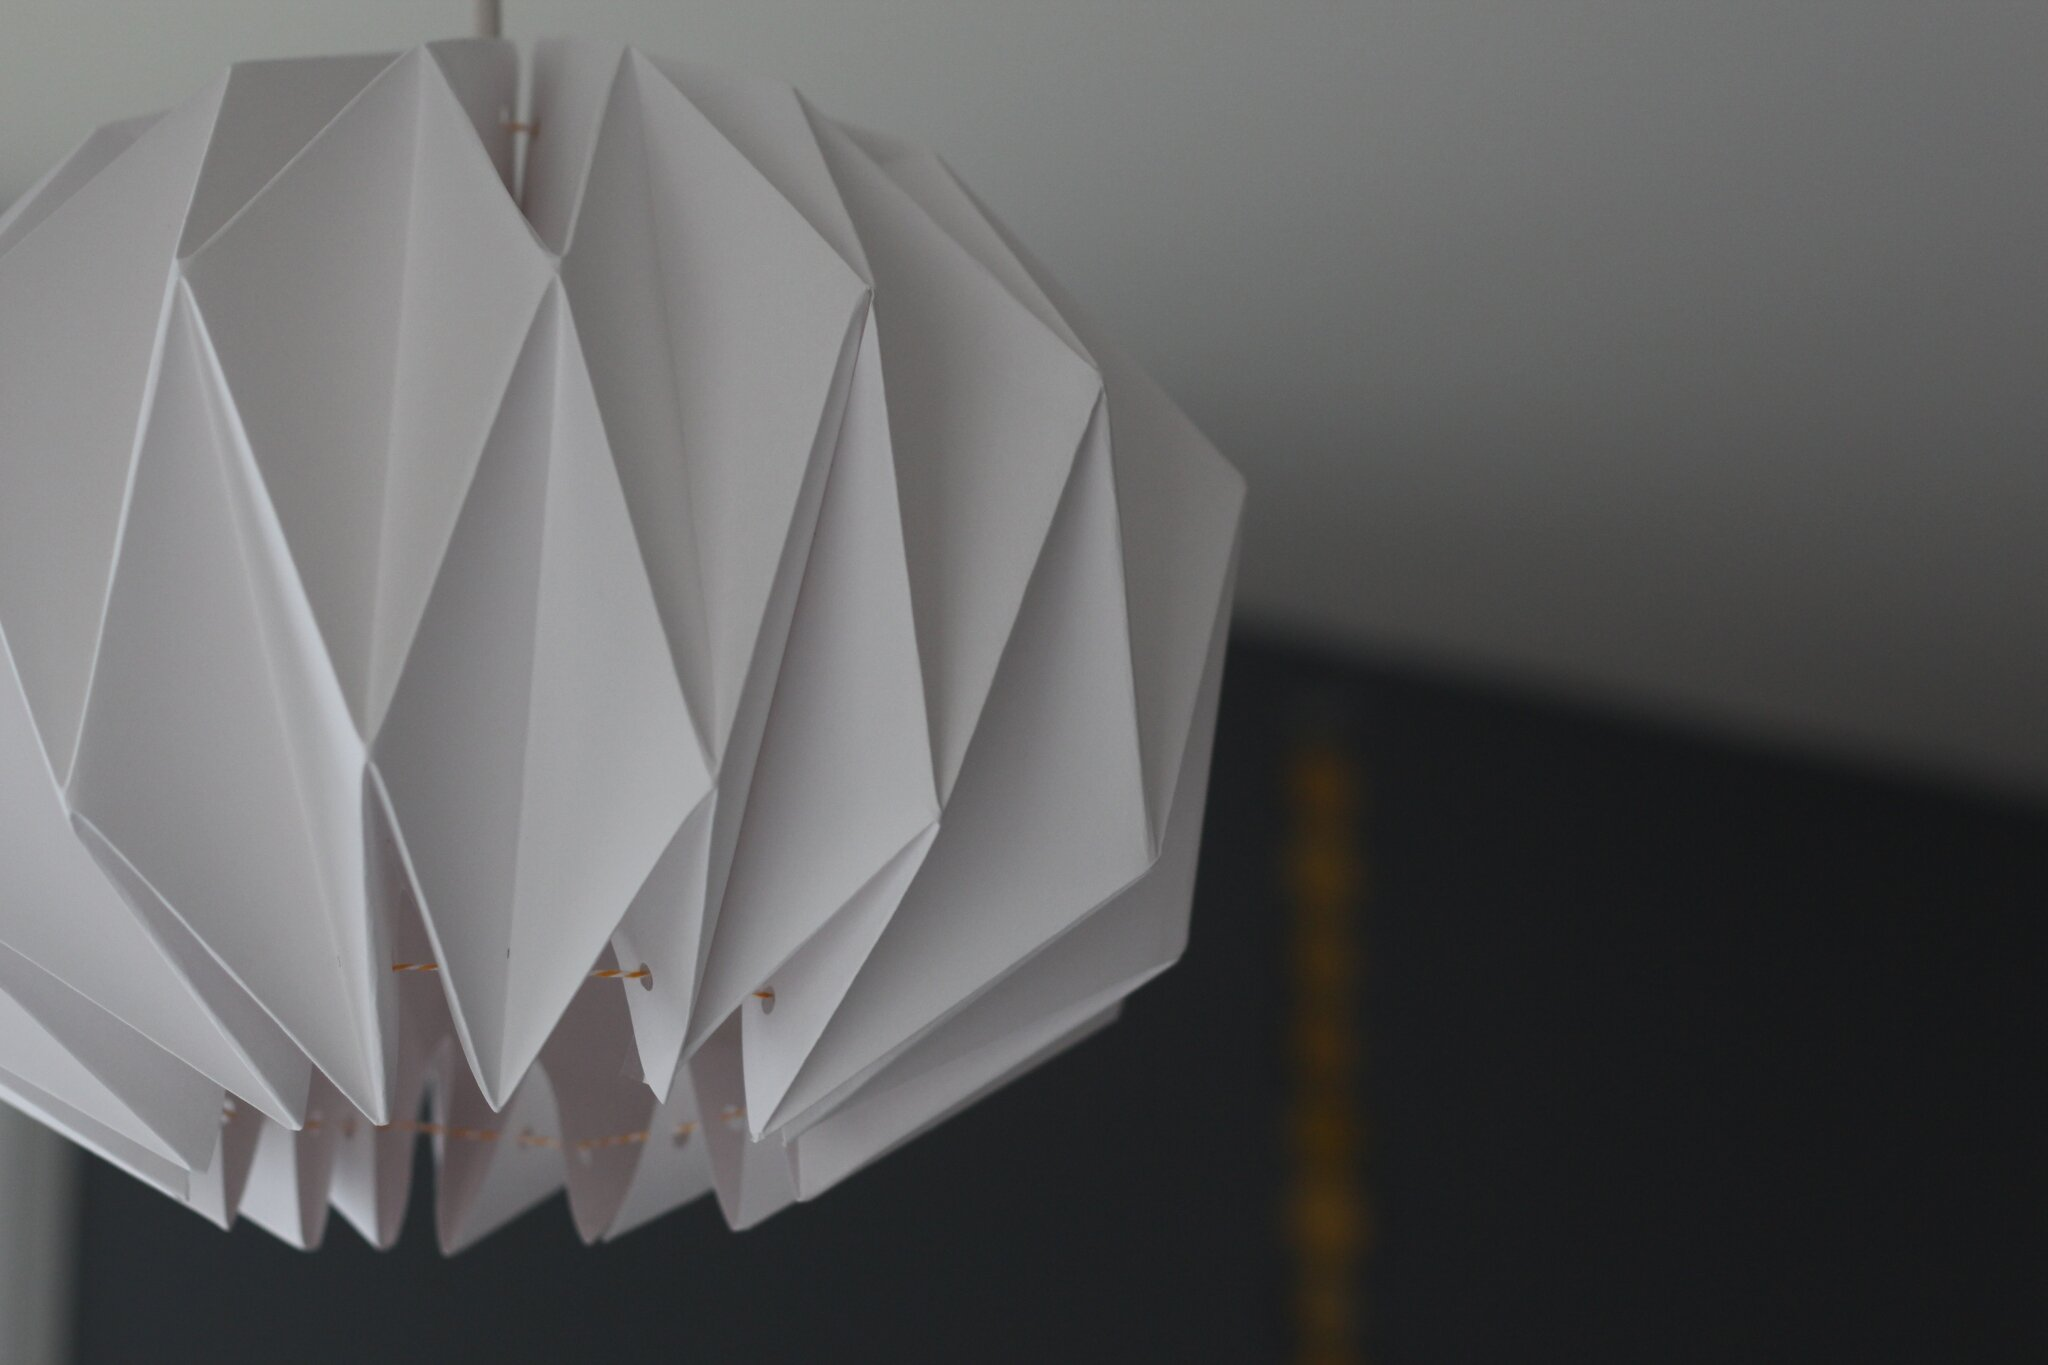 Abat Jours Papier La Suspension Origami Emilie Sans Chichi